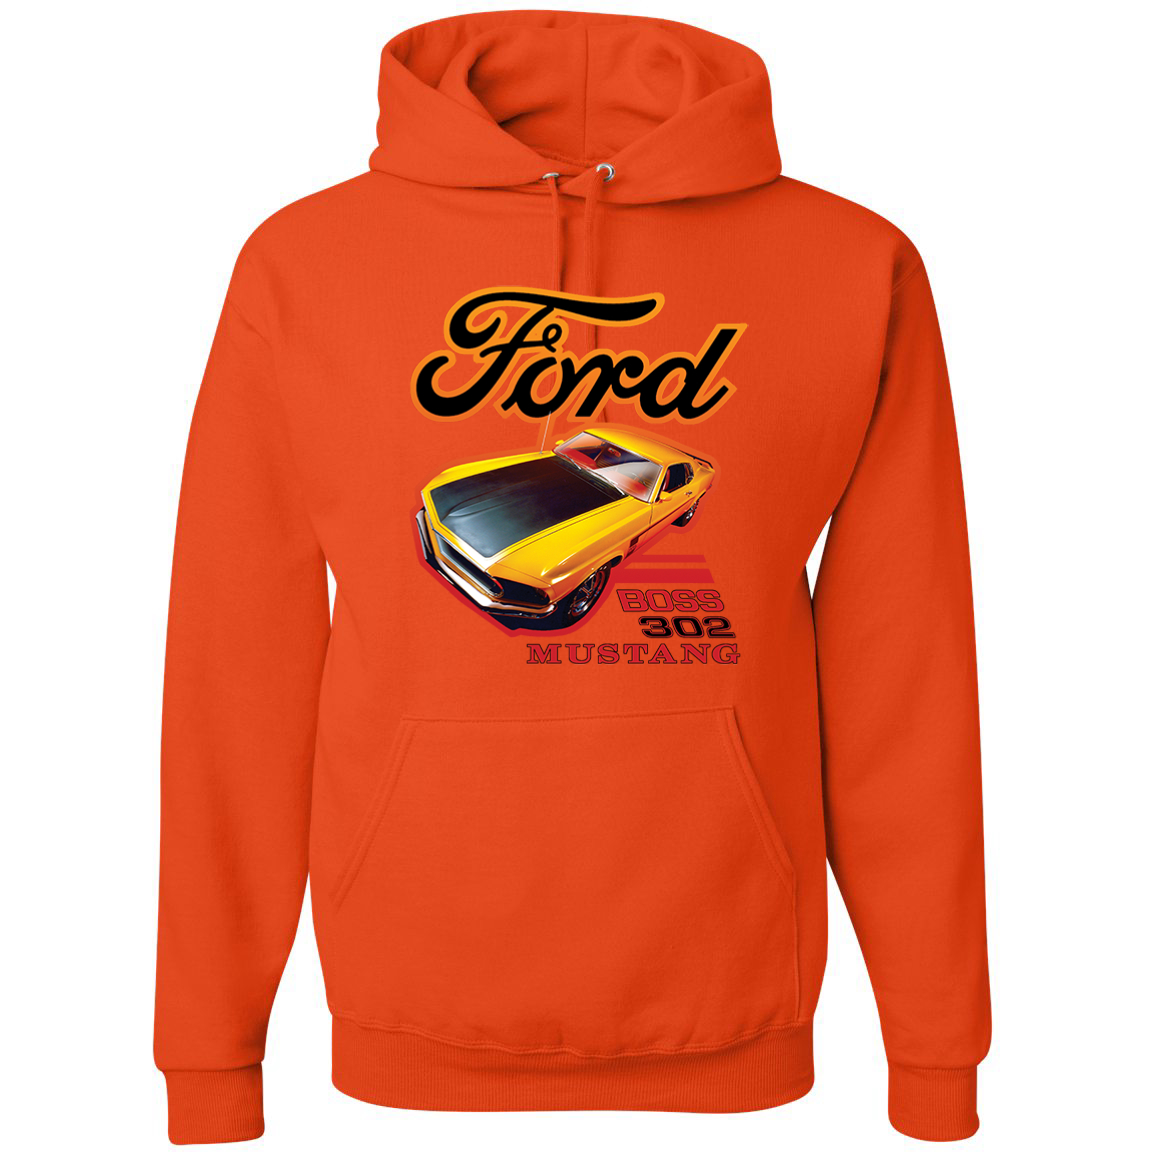 Ford Boss 302 Mustang Racing Classic Cars and Trucks Graphic Hoodie Sweatshirt, …